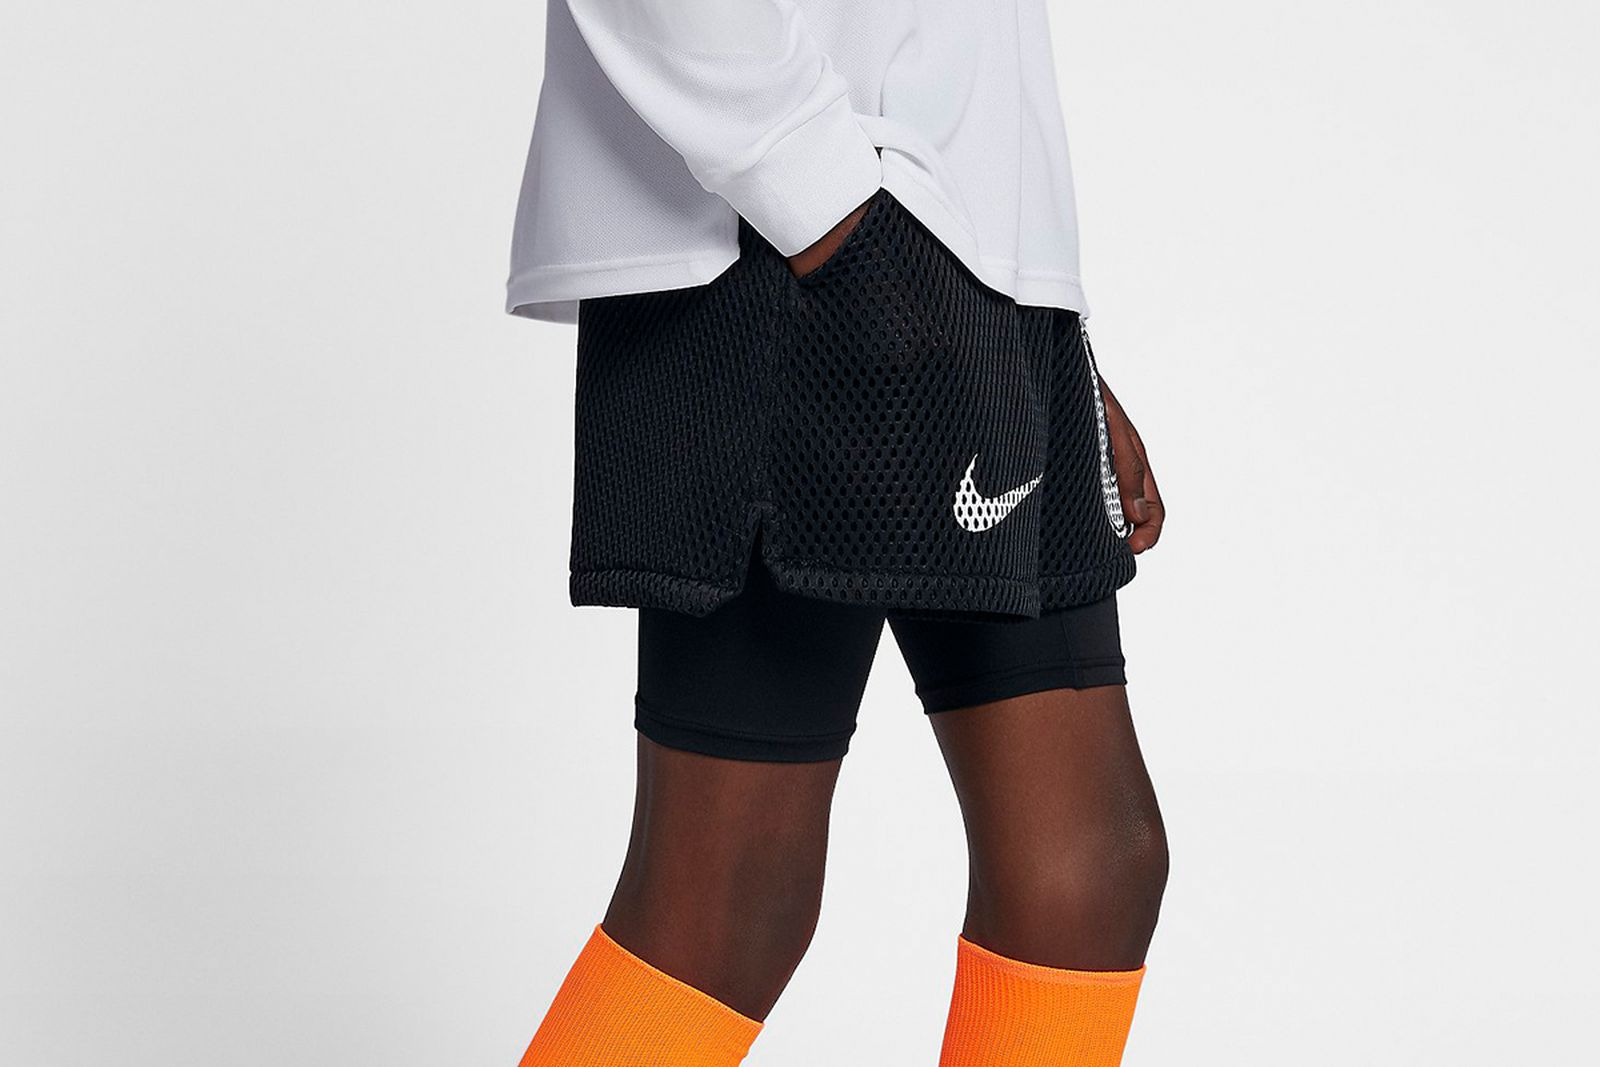 shorts home3 2018 FIFA World Cup Nike OFF-WHITE c/o Virgil Abloh